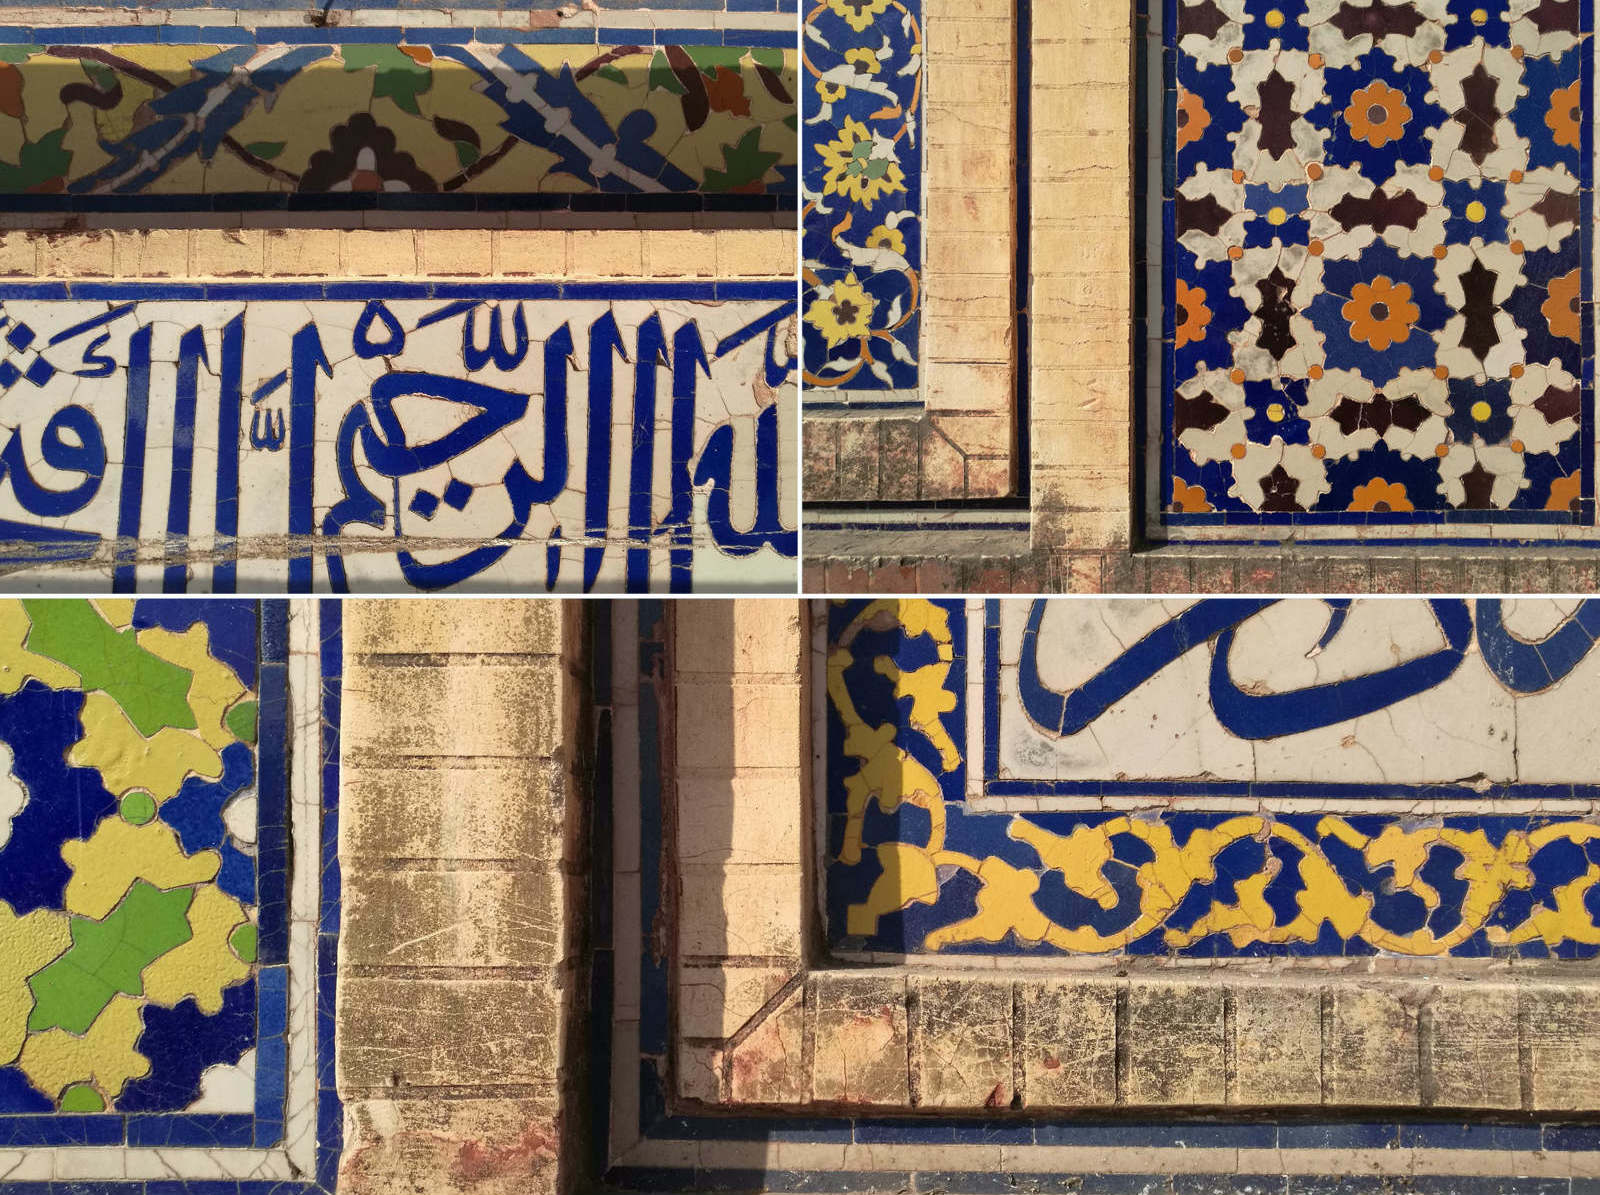 The inspiration: one of the many beautiful tiled panels inside the Wazir Khan Mosque